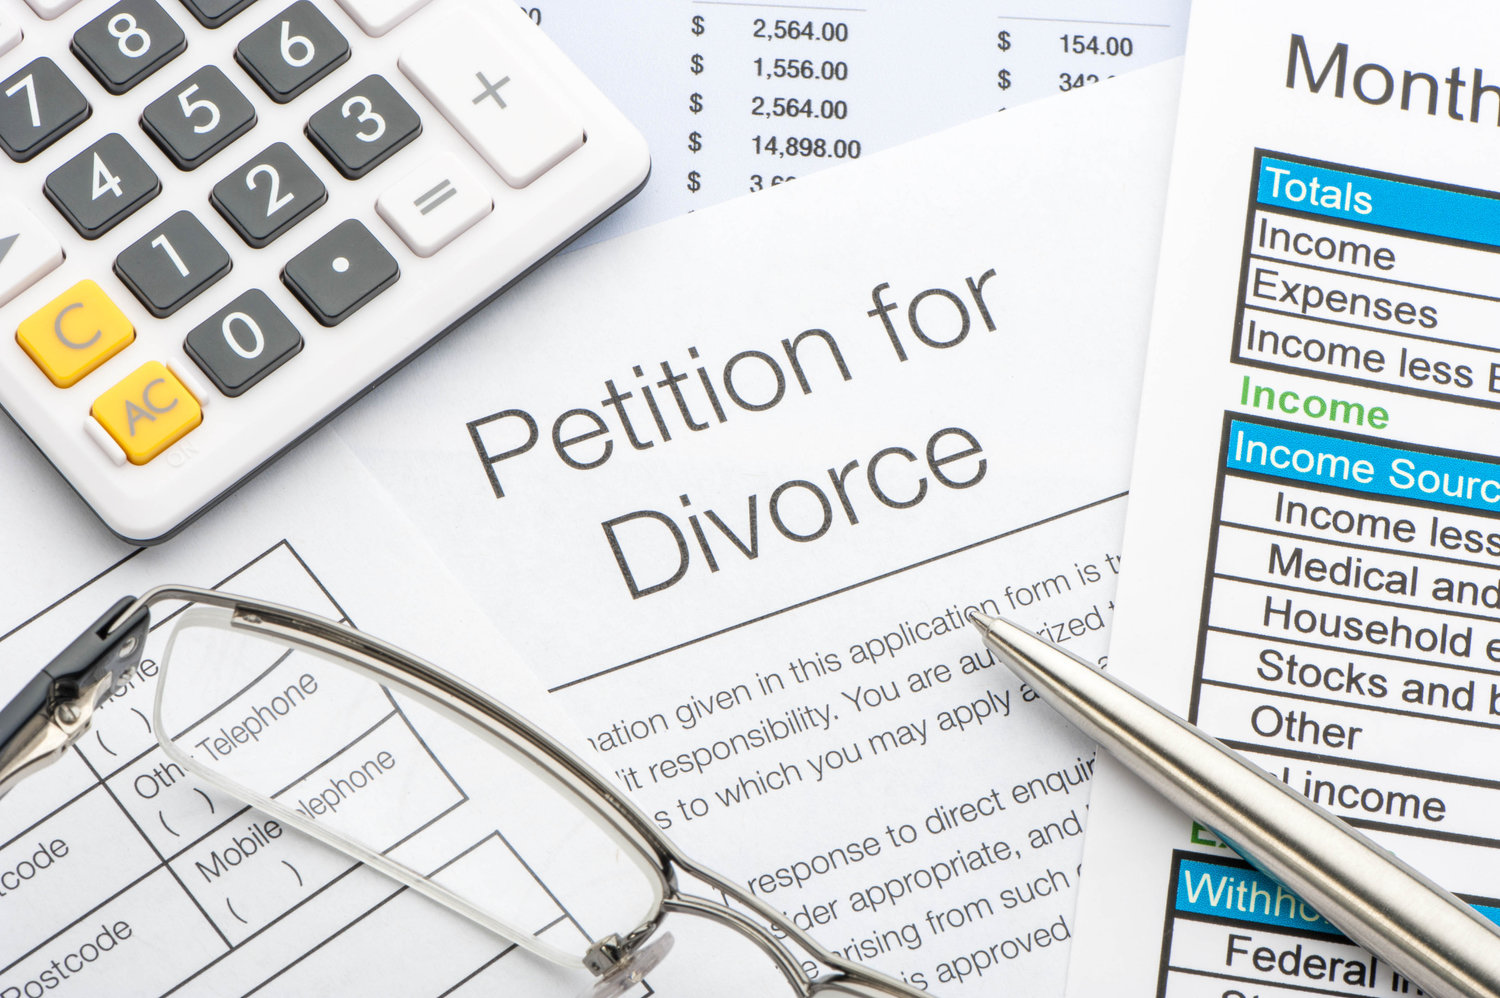 Women in particular may be disproportionately affected by financial difficulties during a divorce.